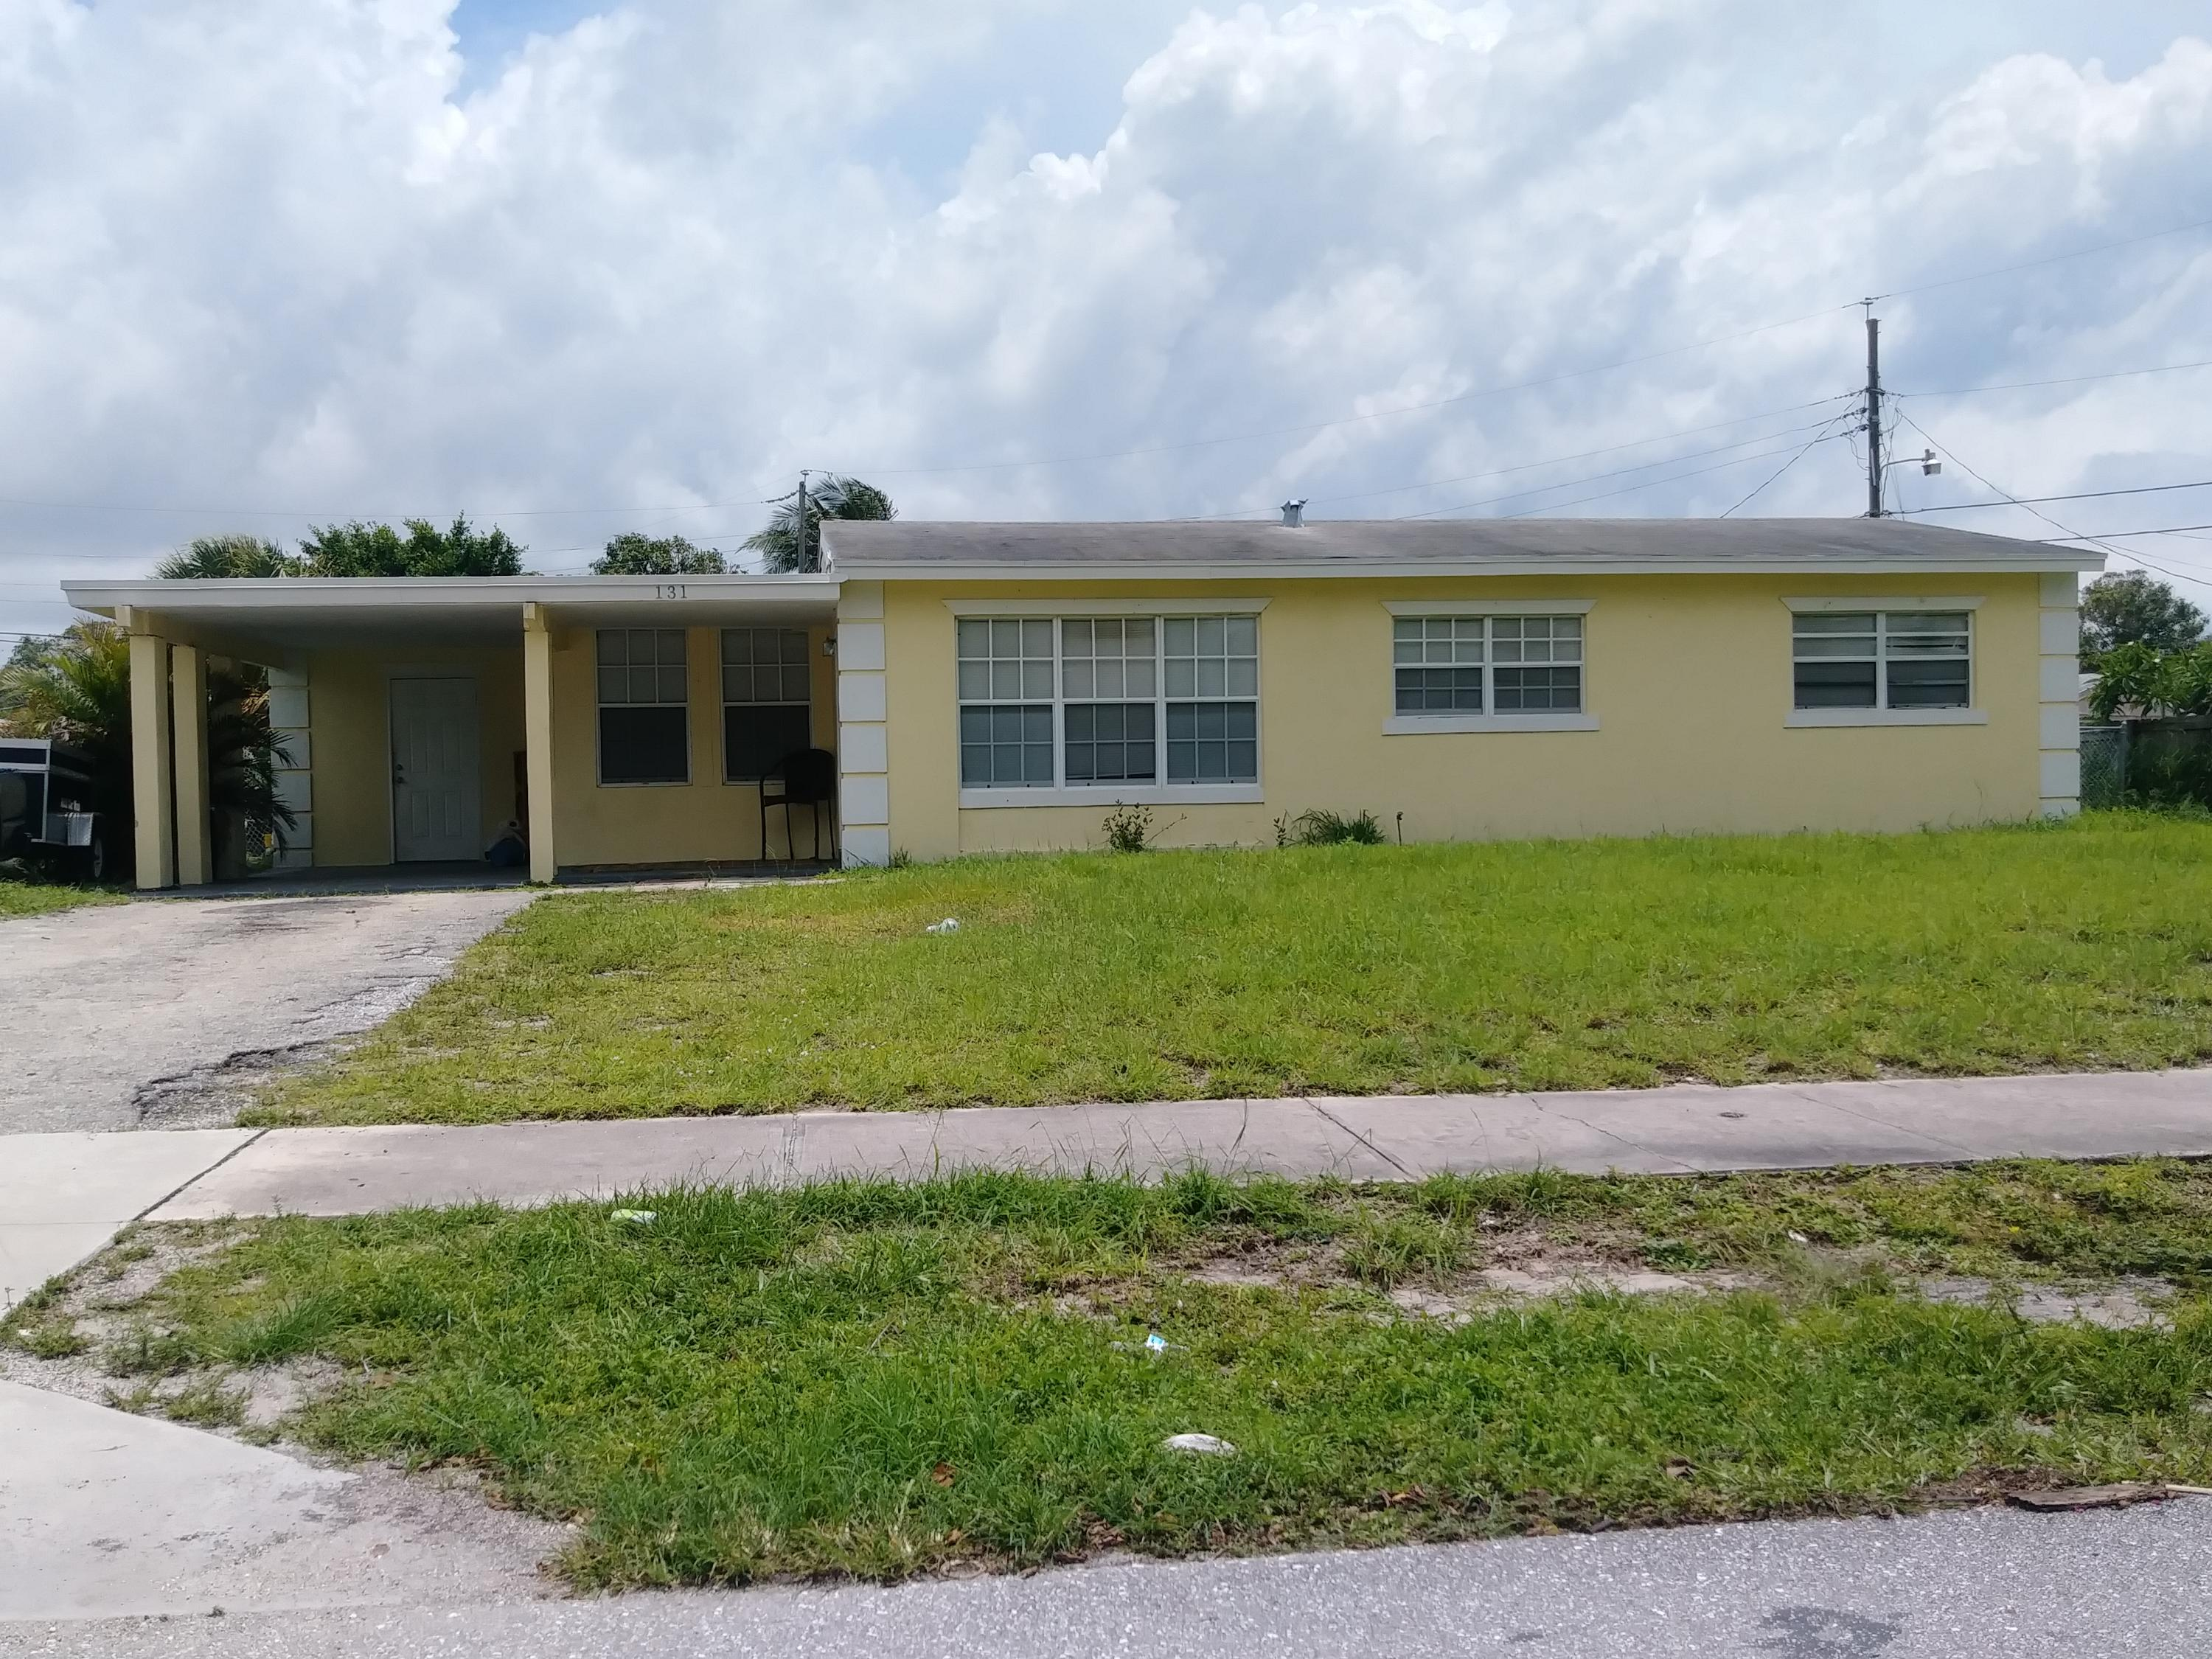 131 15th Avenue, Boynton Beach, Florida 33435, 3 Bedrooms Bedrooms, ,1 BathroomBathrooms,Rental,For Rent,15th,RX-10676372